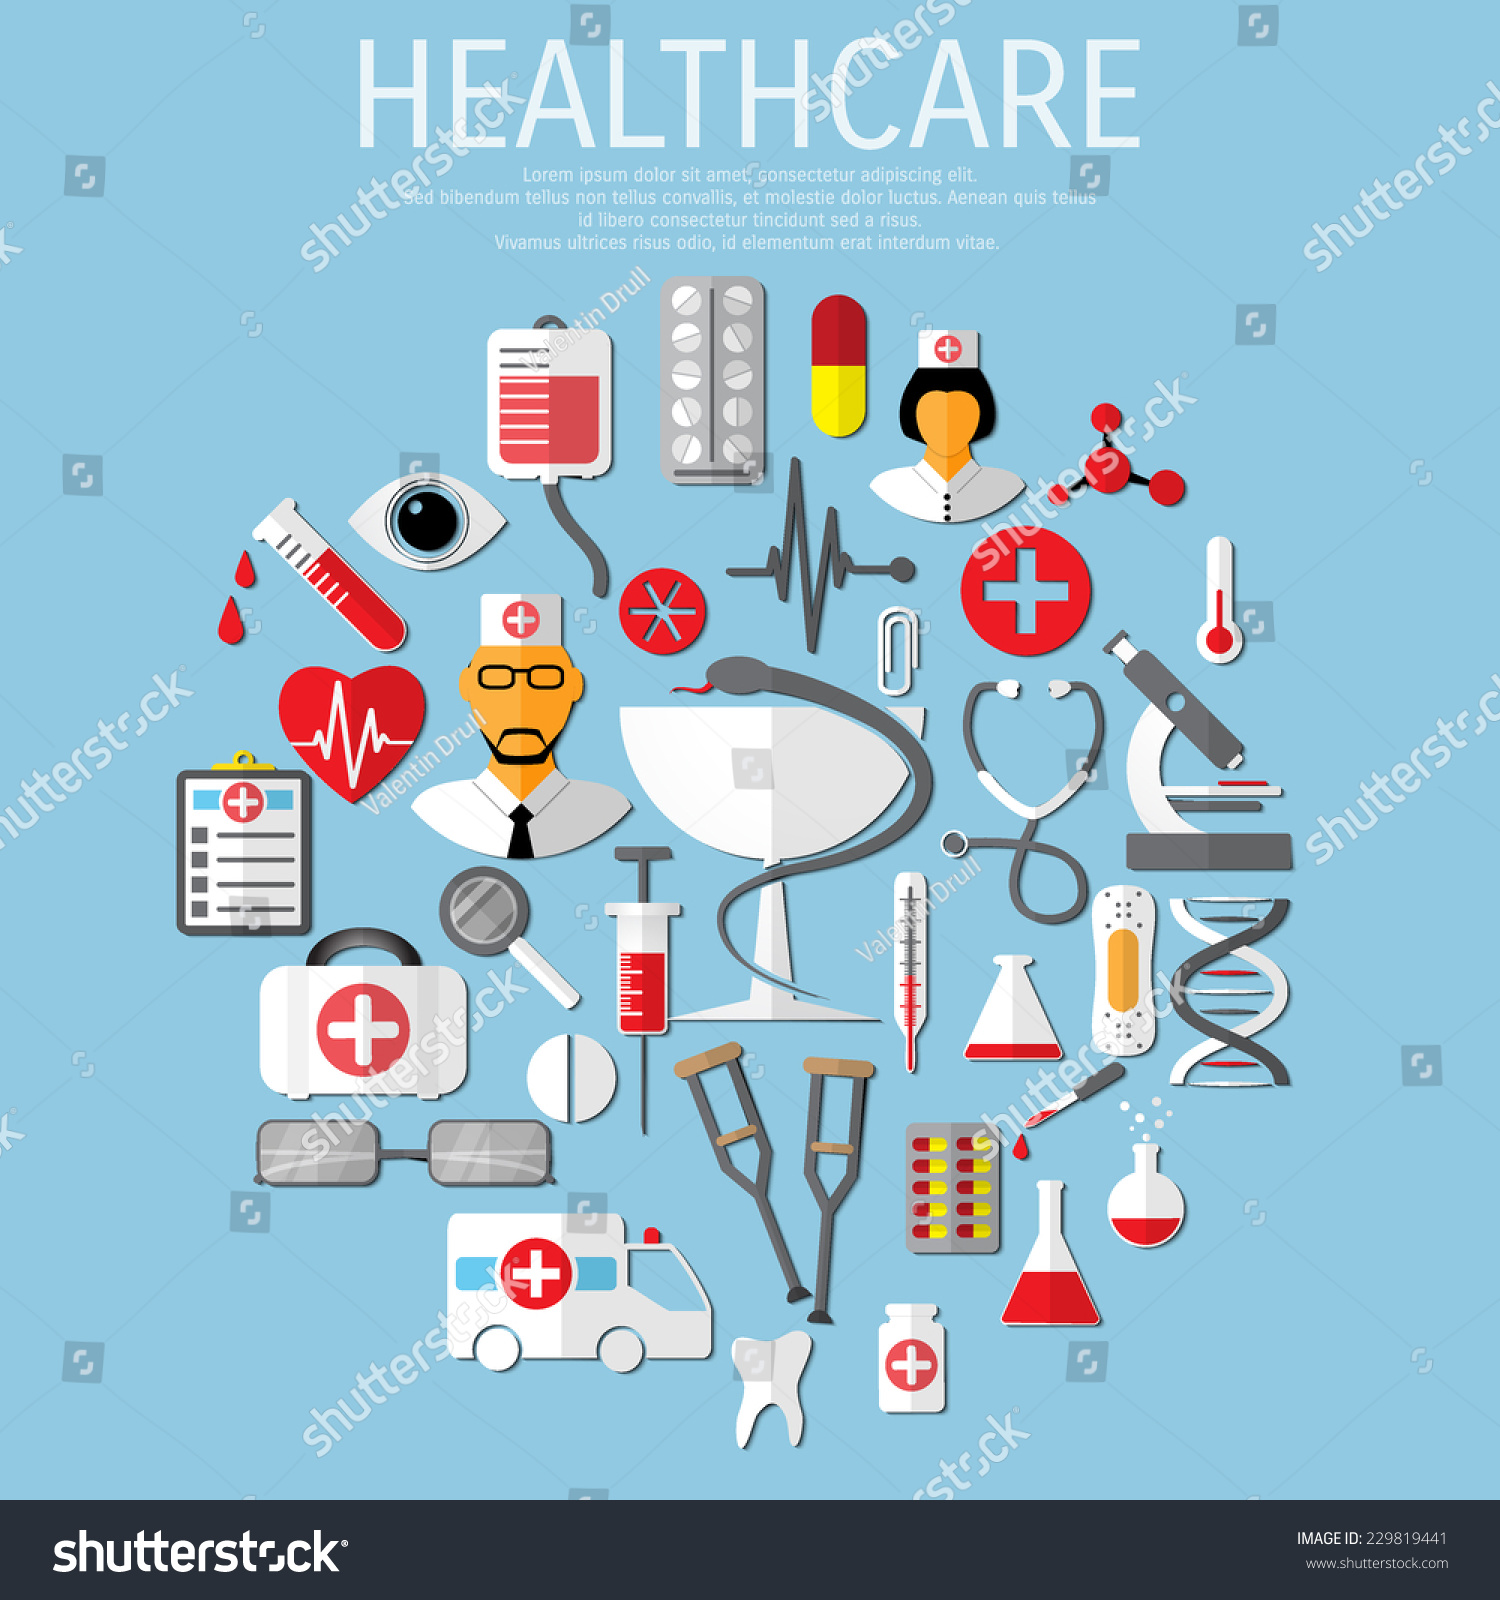 Image result for research healthcare